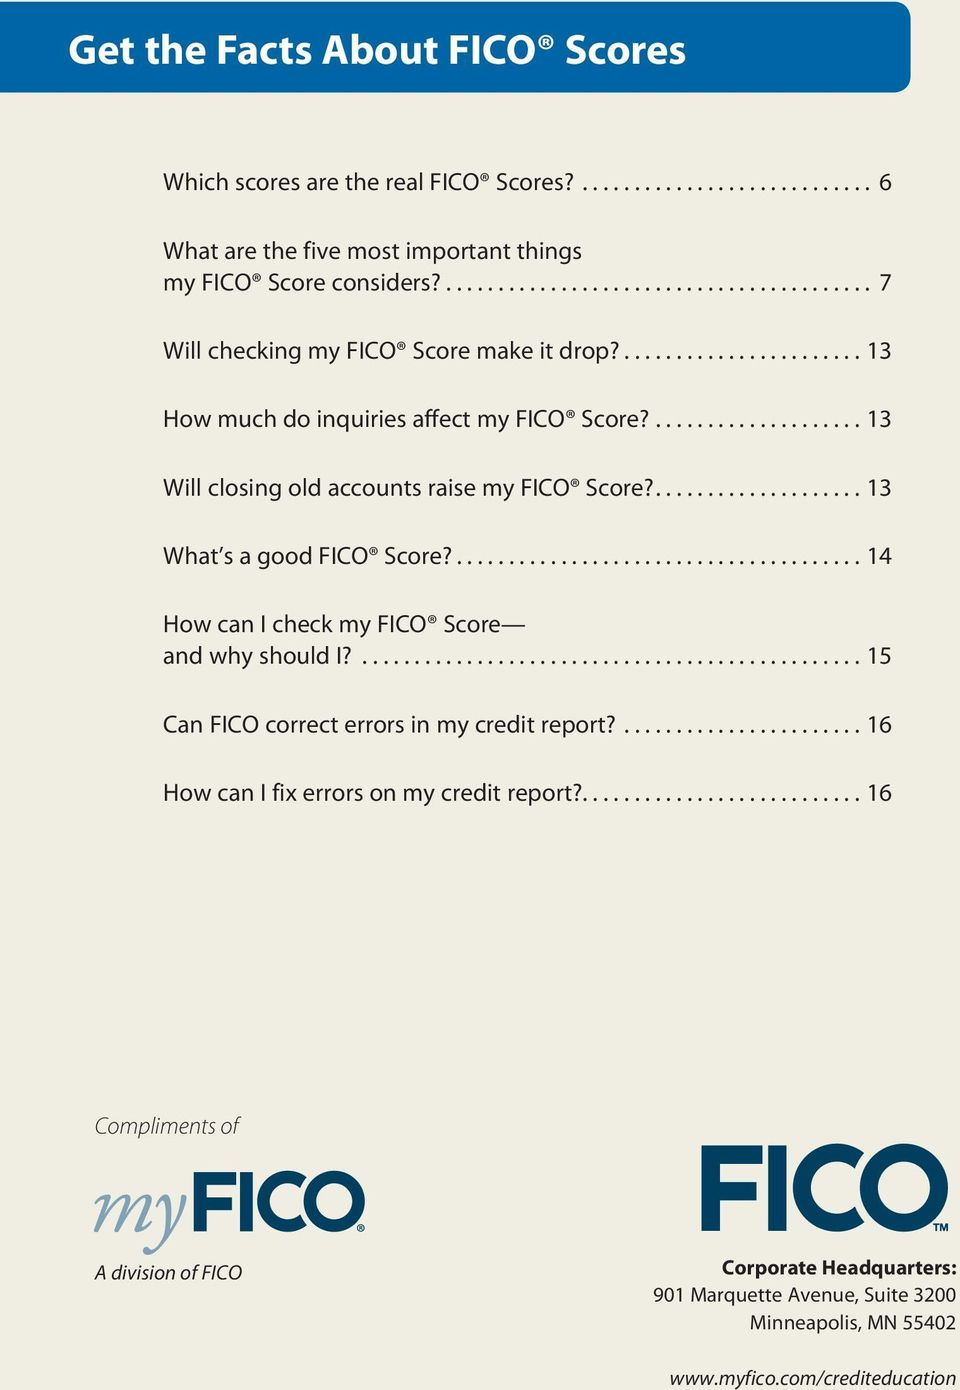 13 What s a good FICO Score? 14 How can I check my FICO Score and why should I? 15 Can FICO correct errors in my credit report?